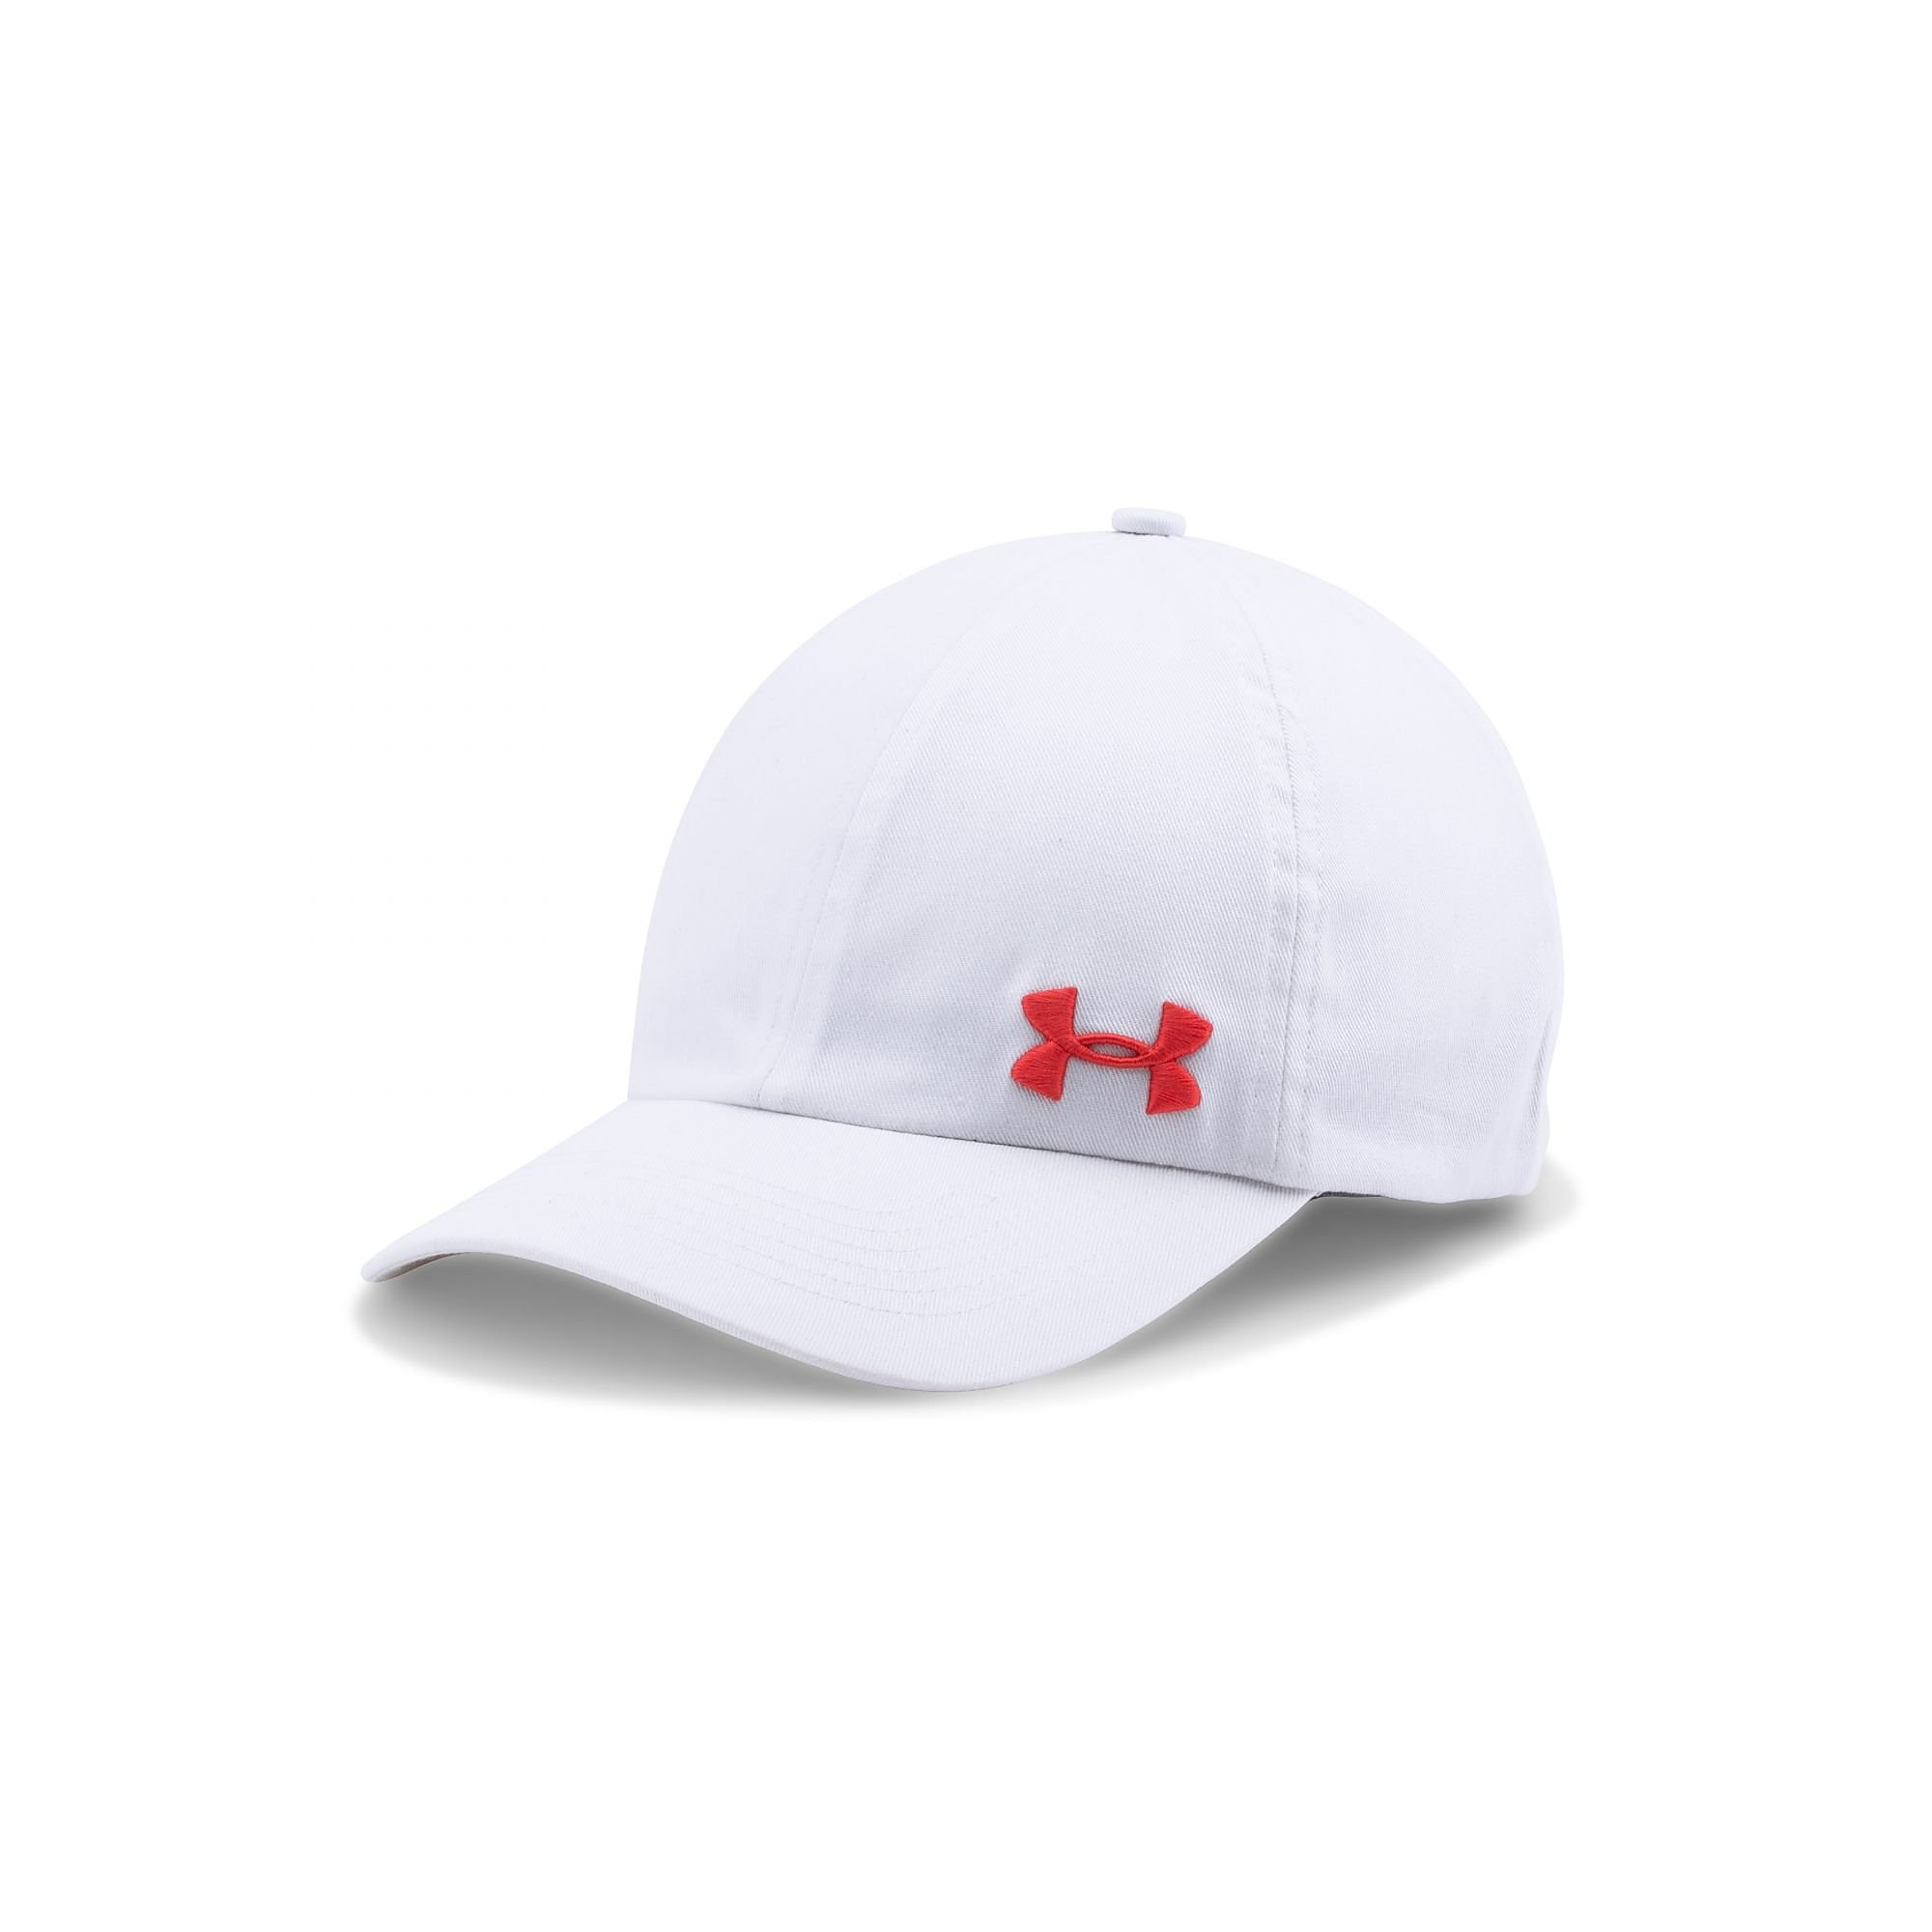 Under Armour SOLID CAP